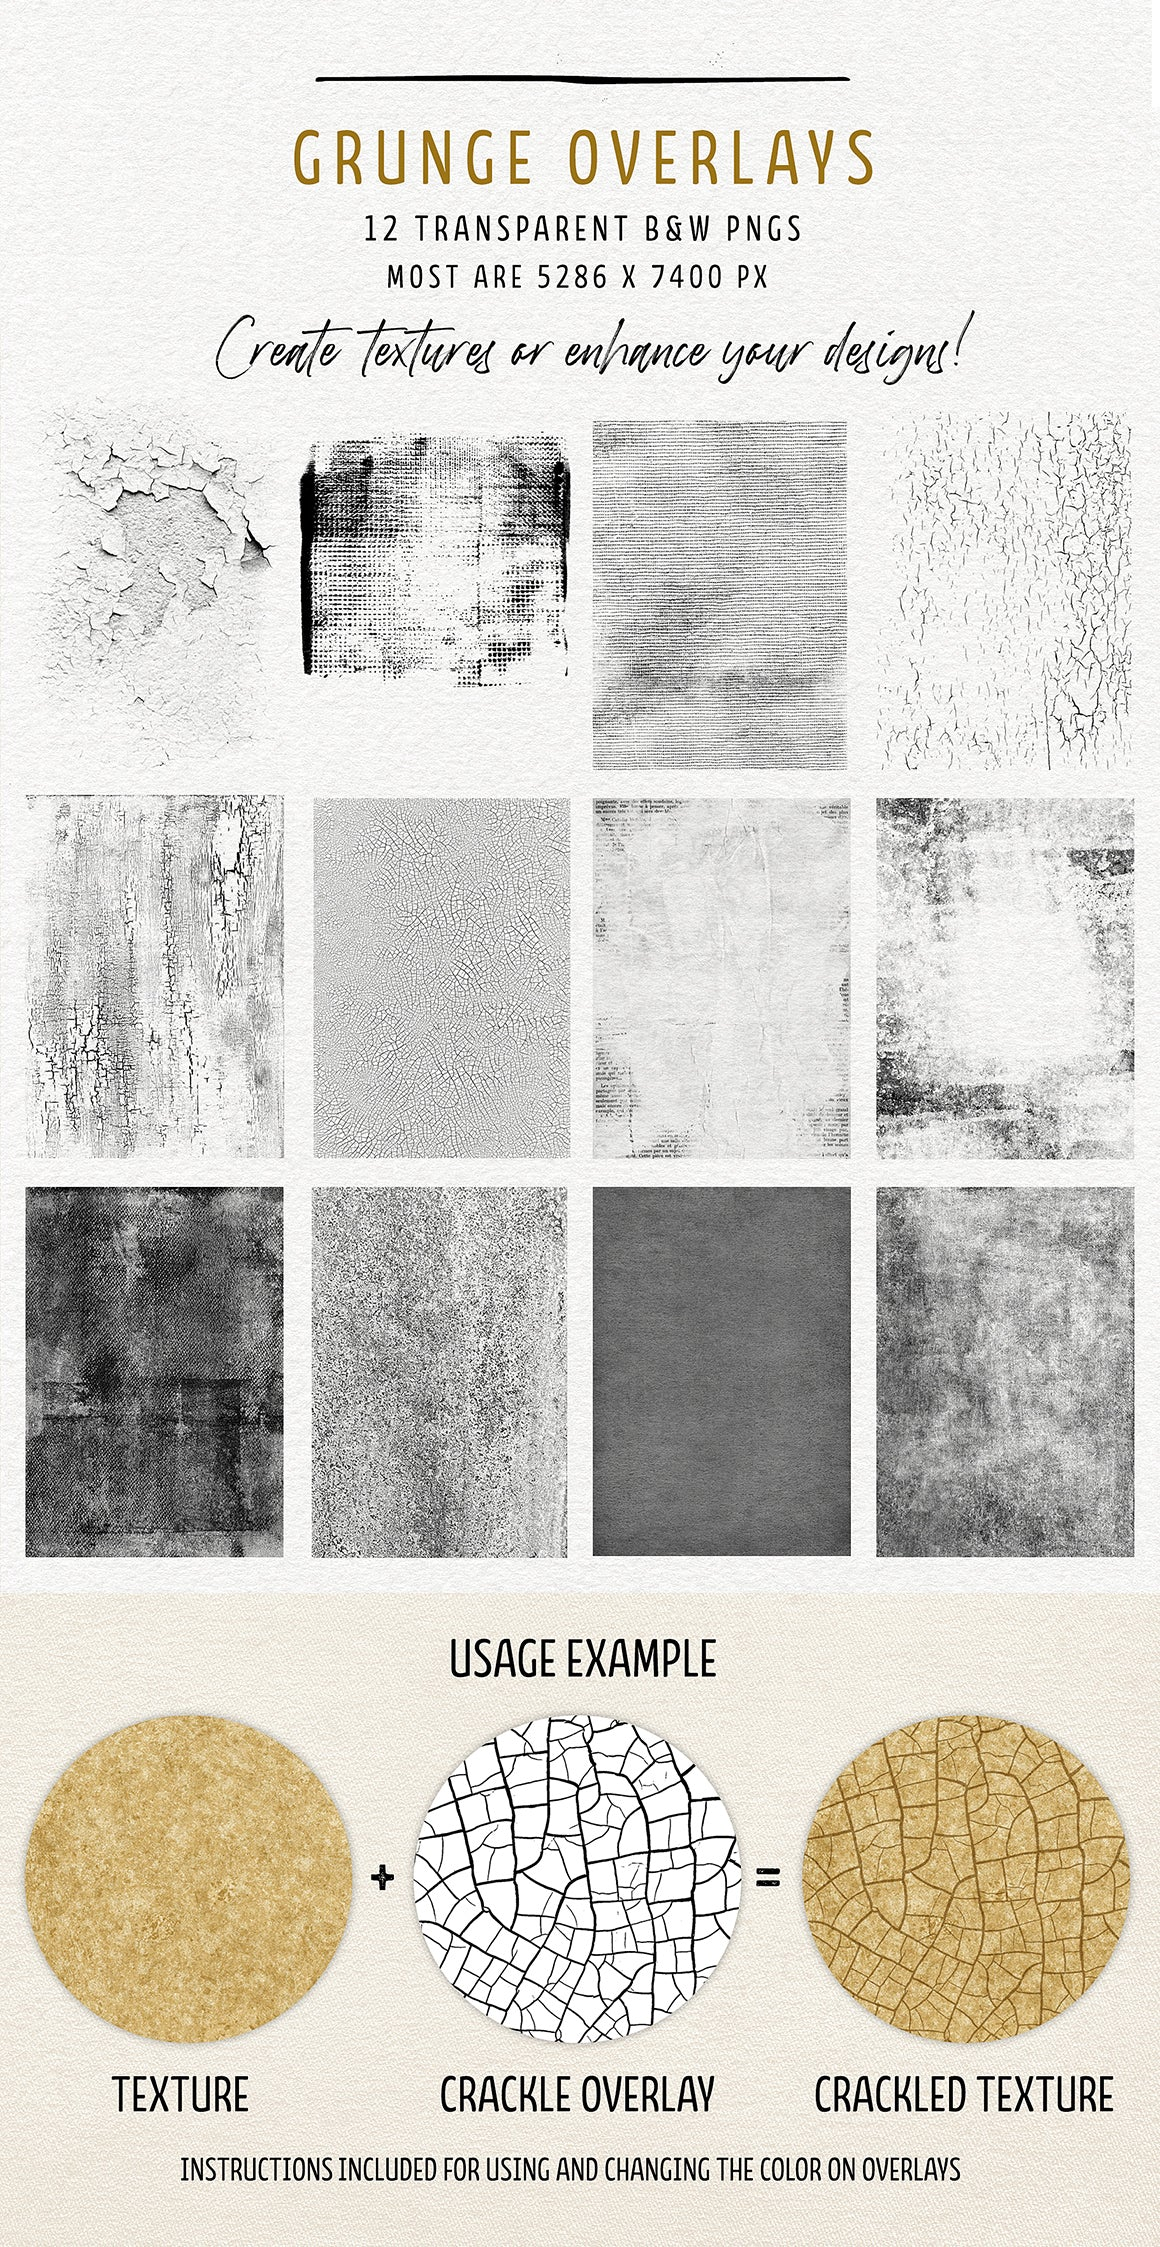 Grunge overlays, part of the Complete Inspirational Textures and Elements Collection.